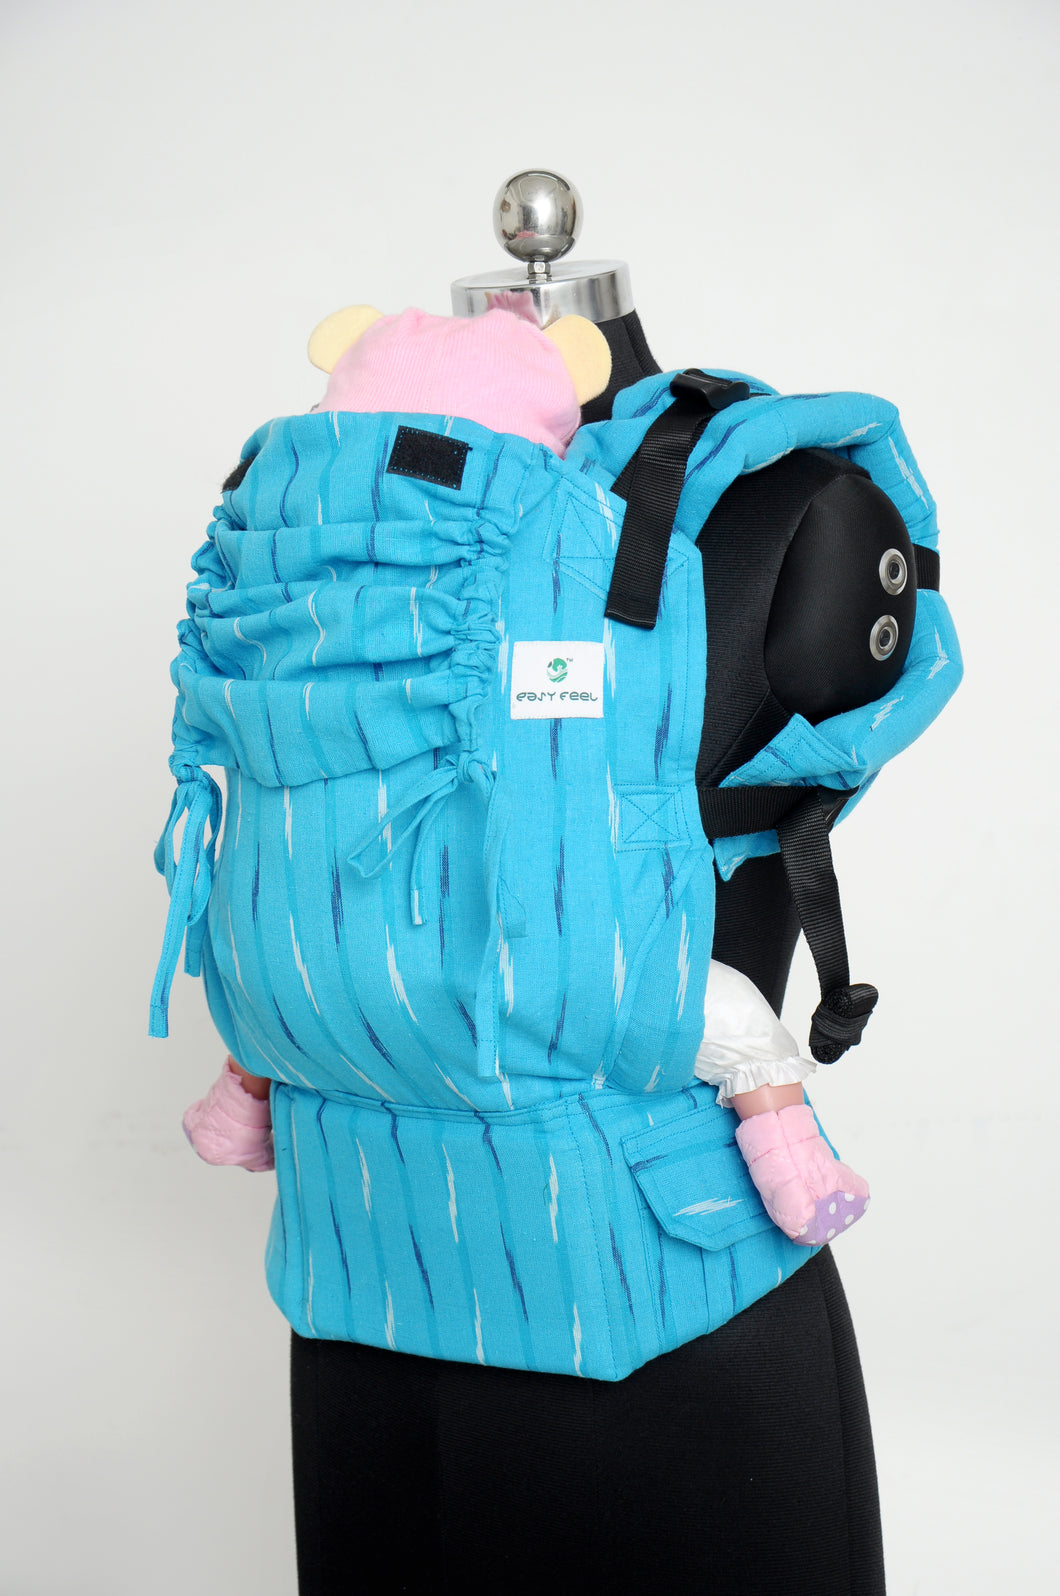 Preschool Wrap Converted Soft Structured Carrier - Azureous